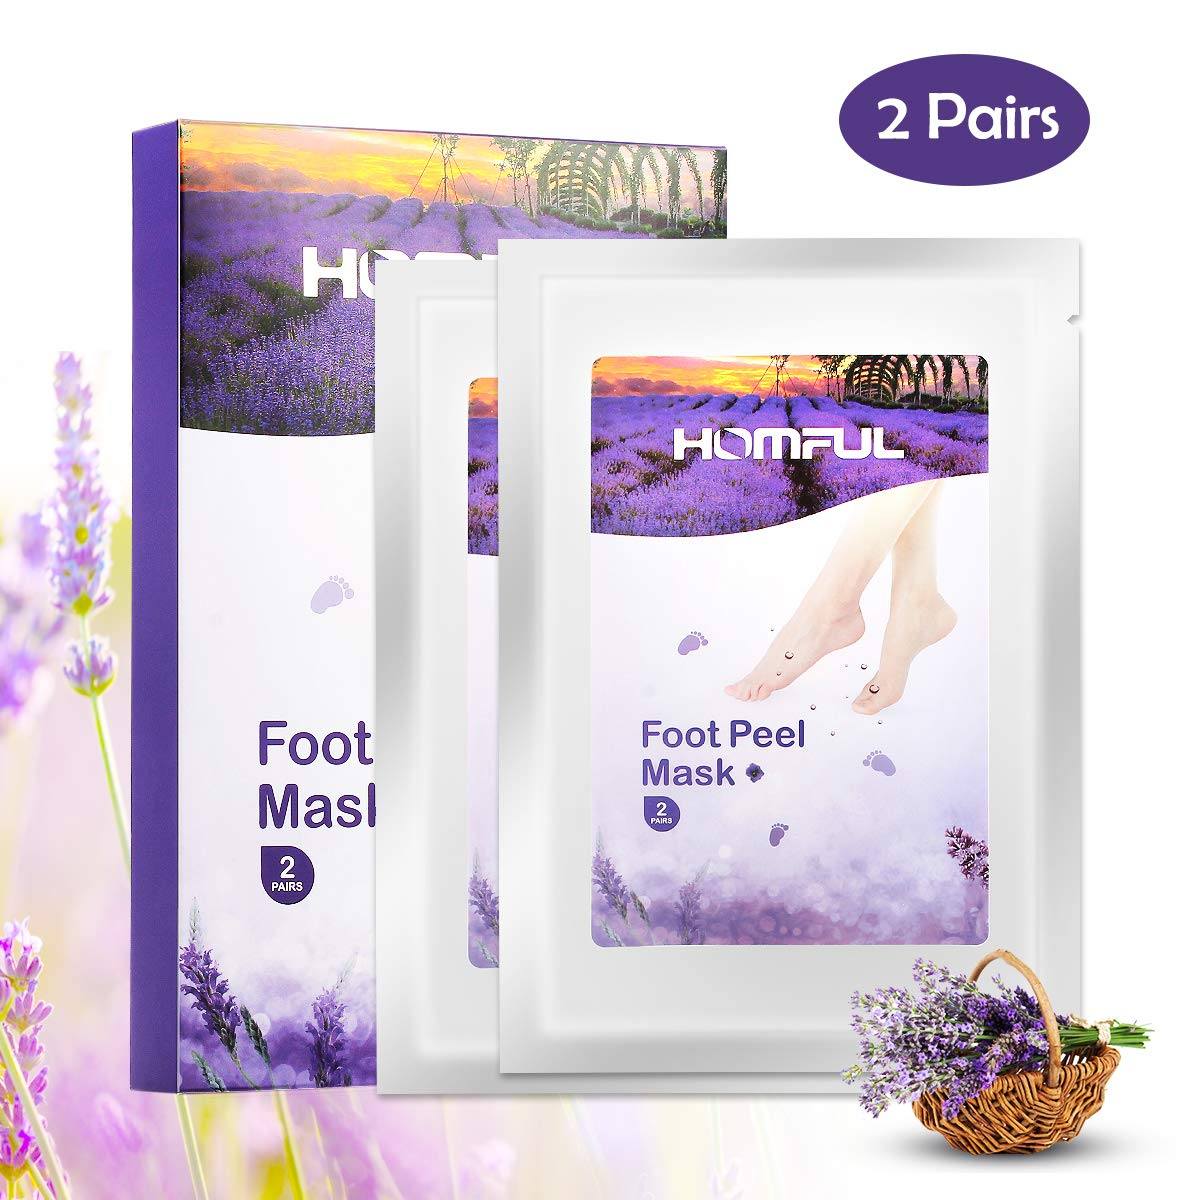 Exfoliating Foot Peel Mask 2 Pairs, Lavender Foot Peeling Mask,Soft & Smooth Feet, Peeling Away Rough Dead Skin & Calluses in 7 Days Excuty